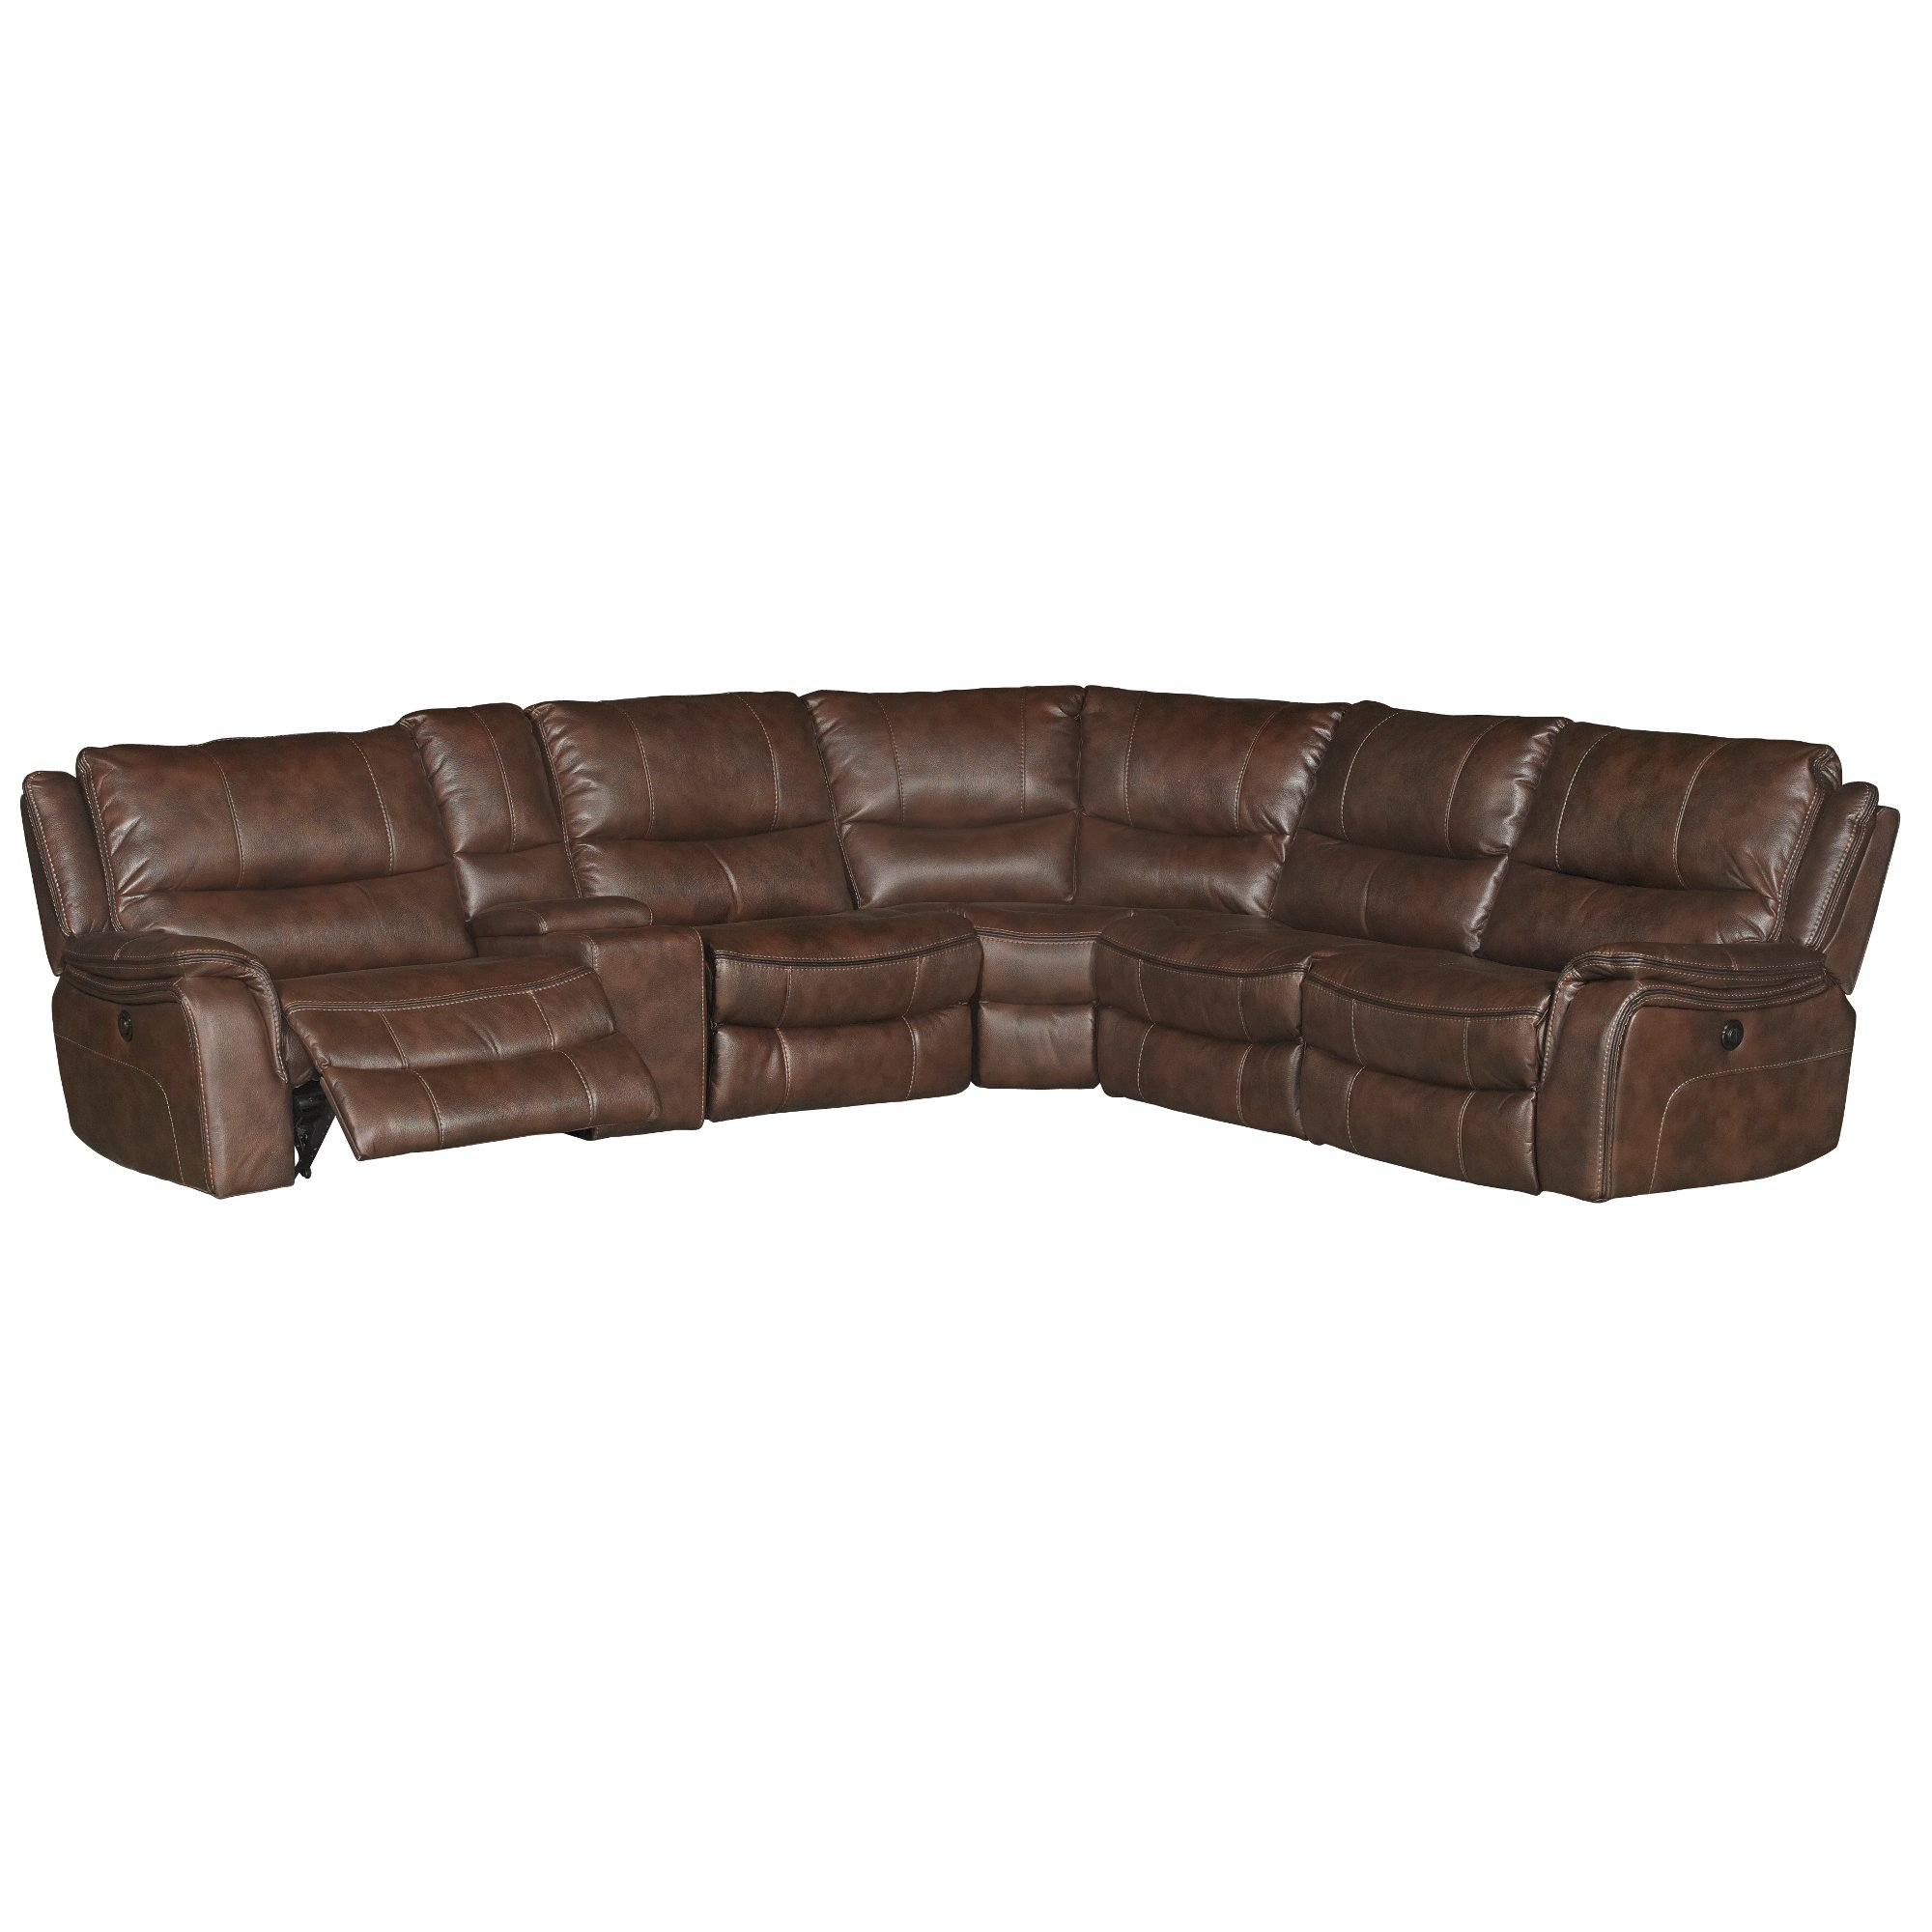 sofa preston docks secional sofas brown 6 piece power reclining sectional wayne rc willey furniture store